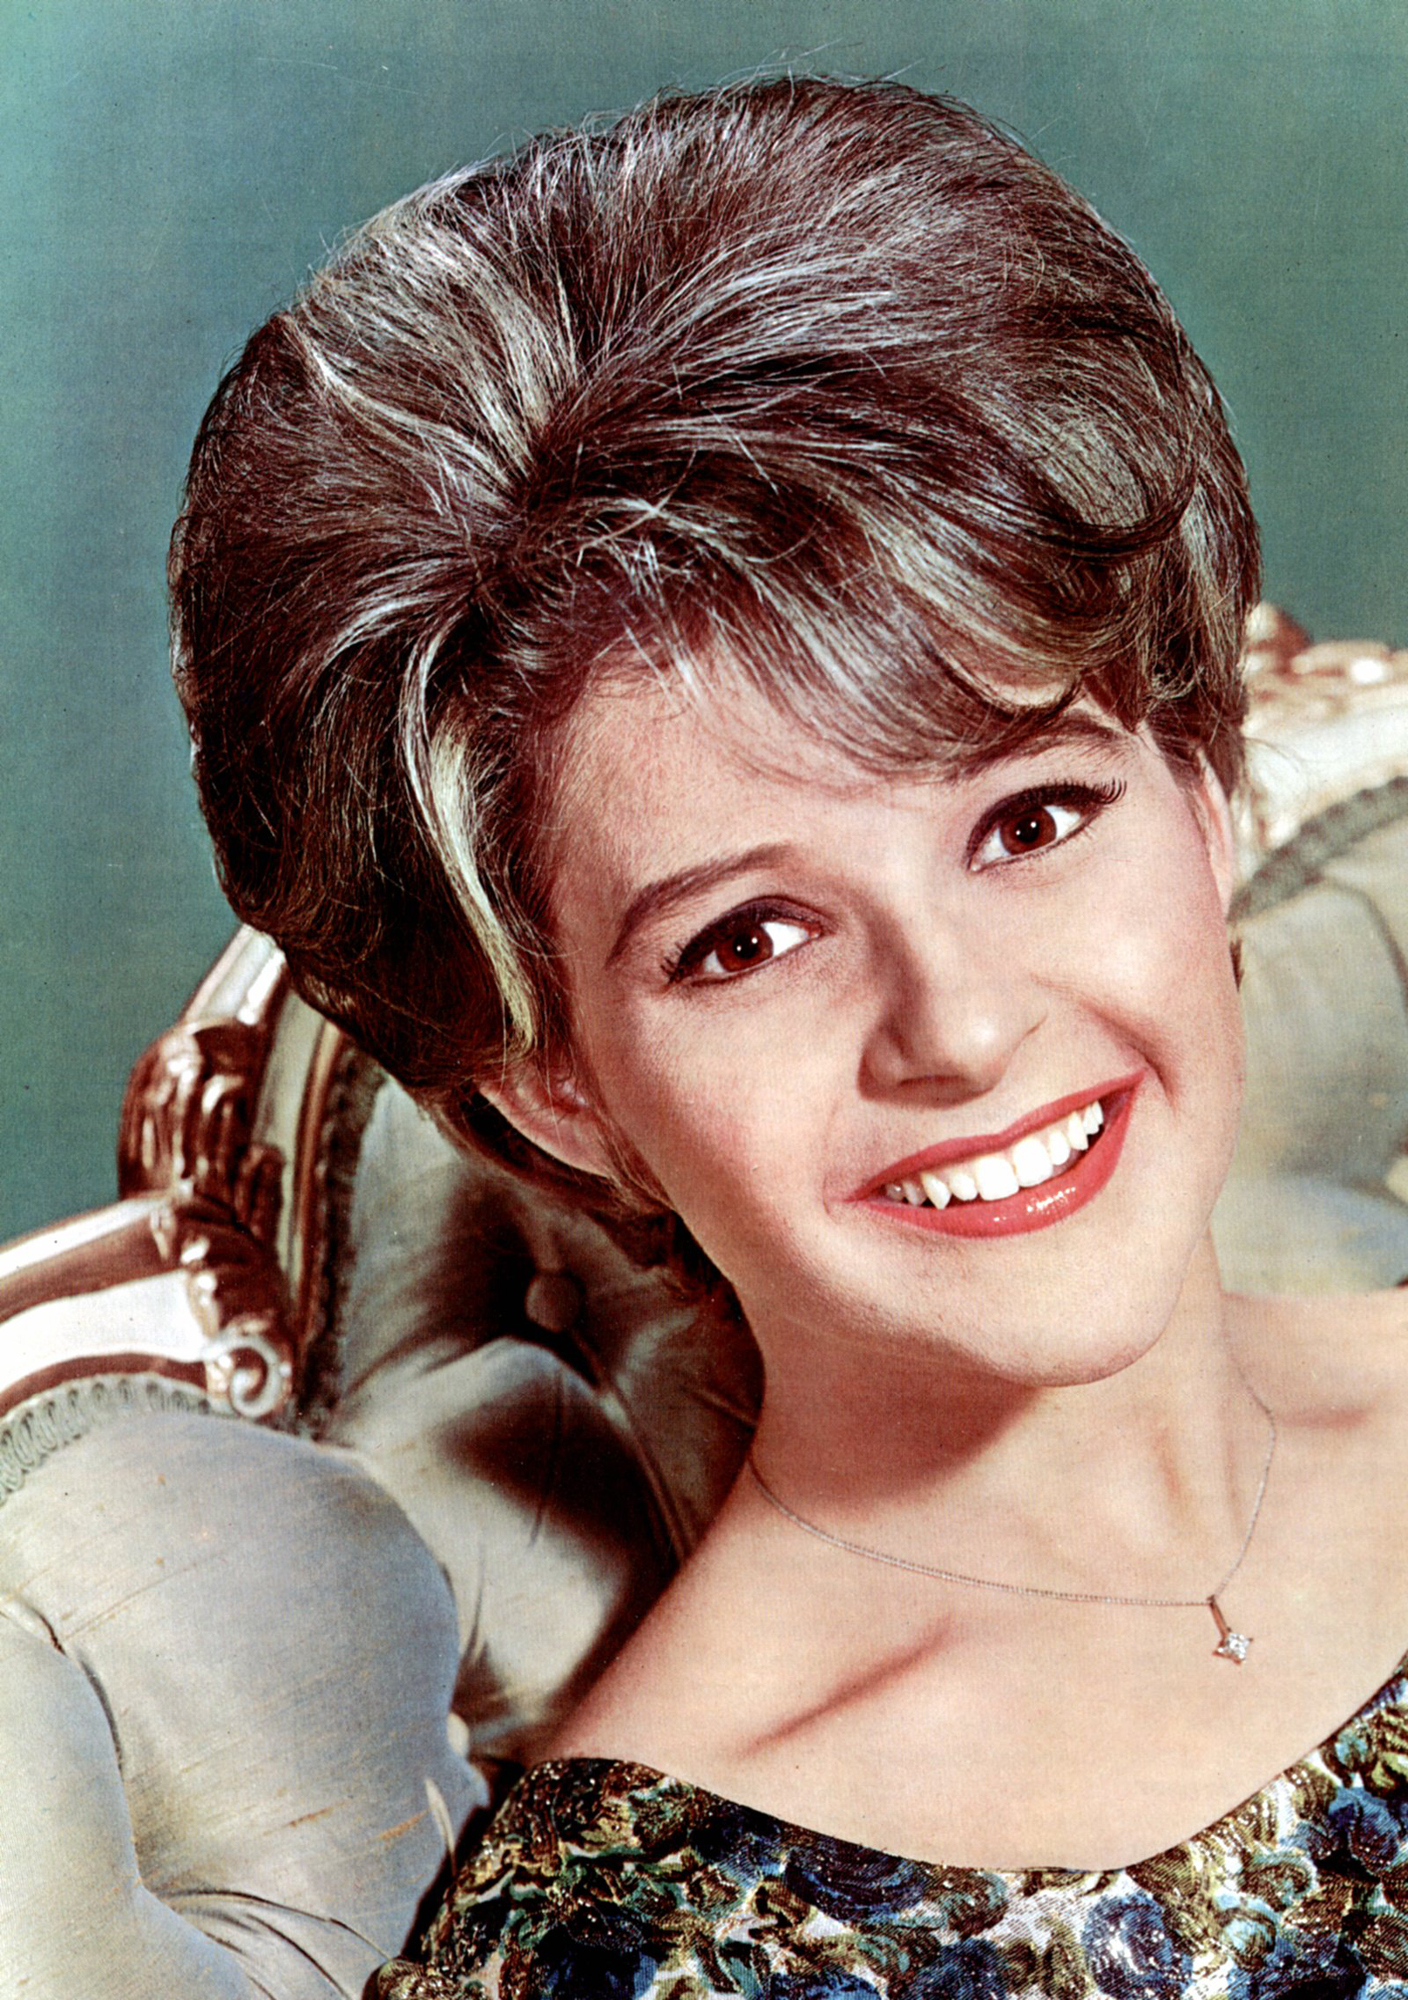 BRENDA LEE - HOLIDAY SONGS 1001